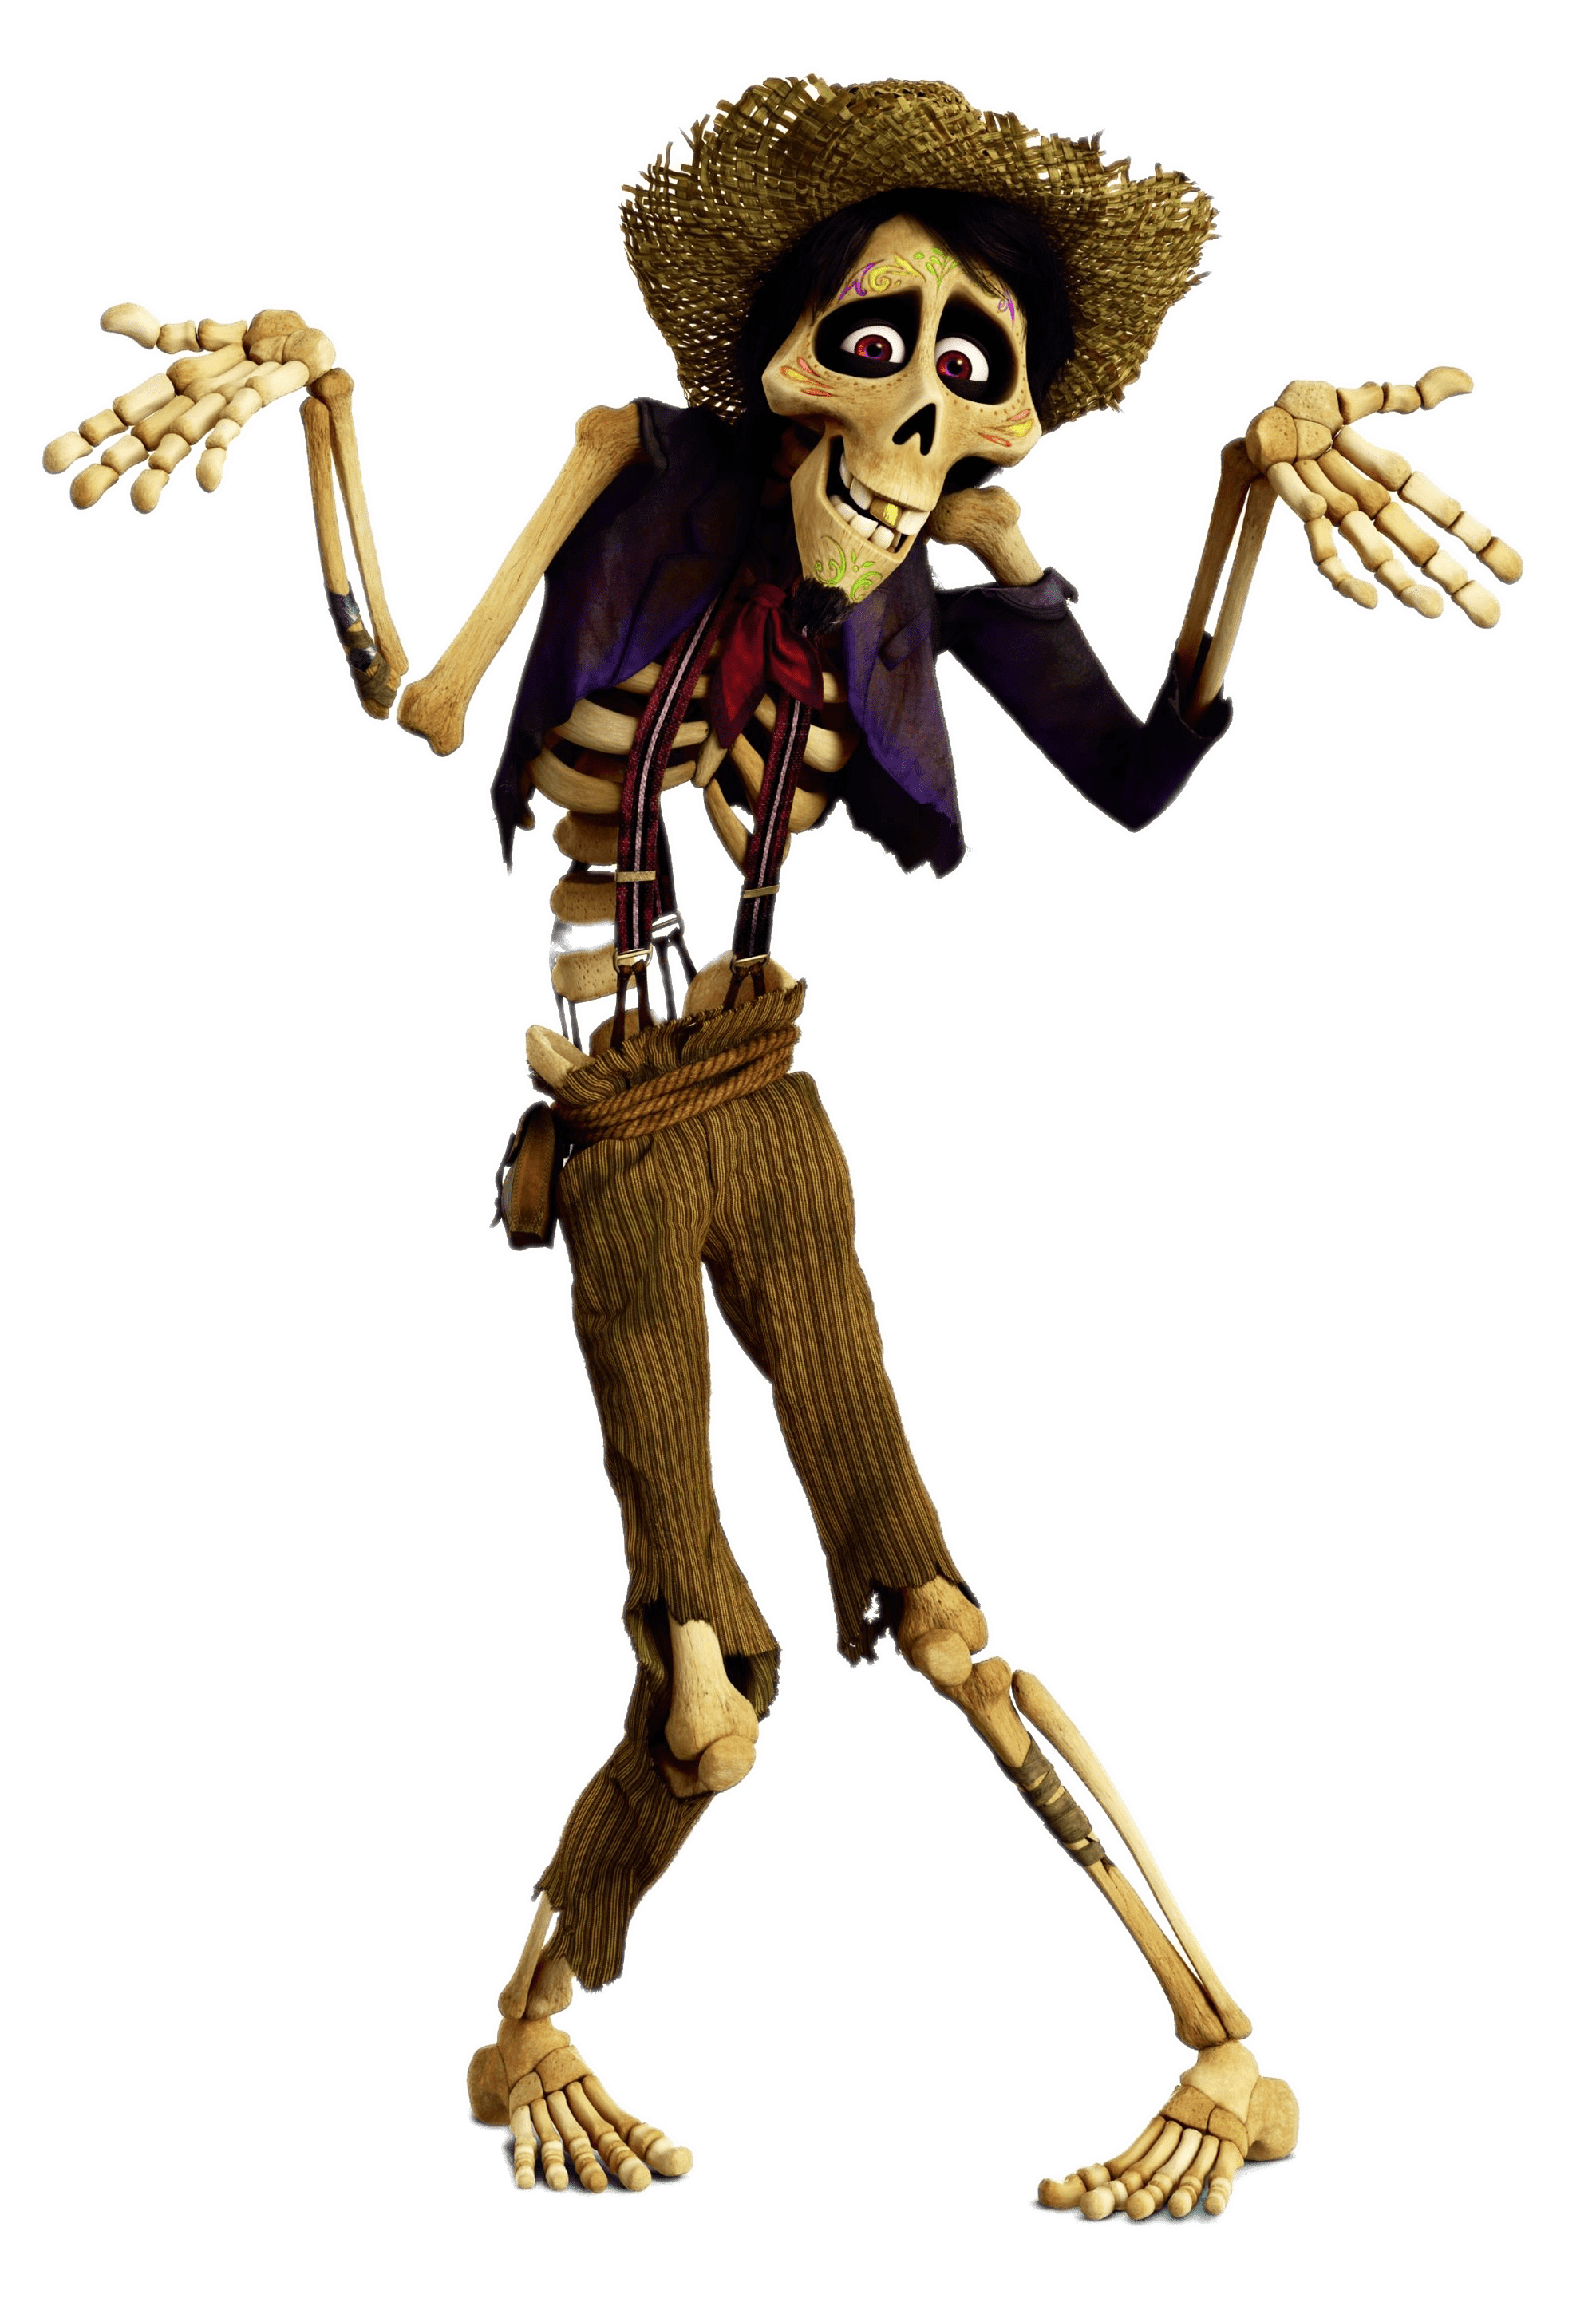 Coco cartoon png. Hector doensn t know